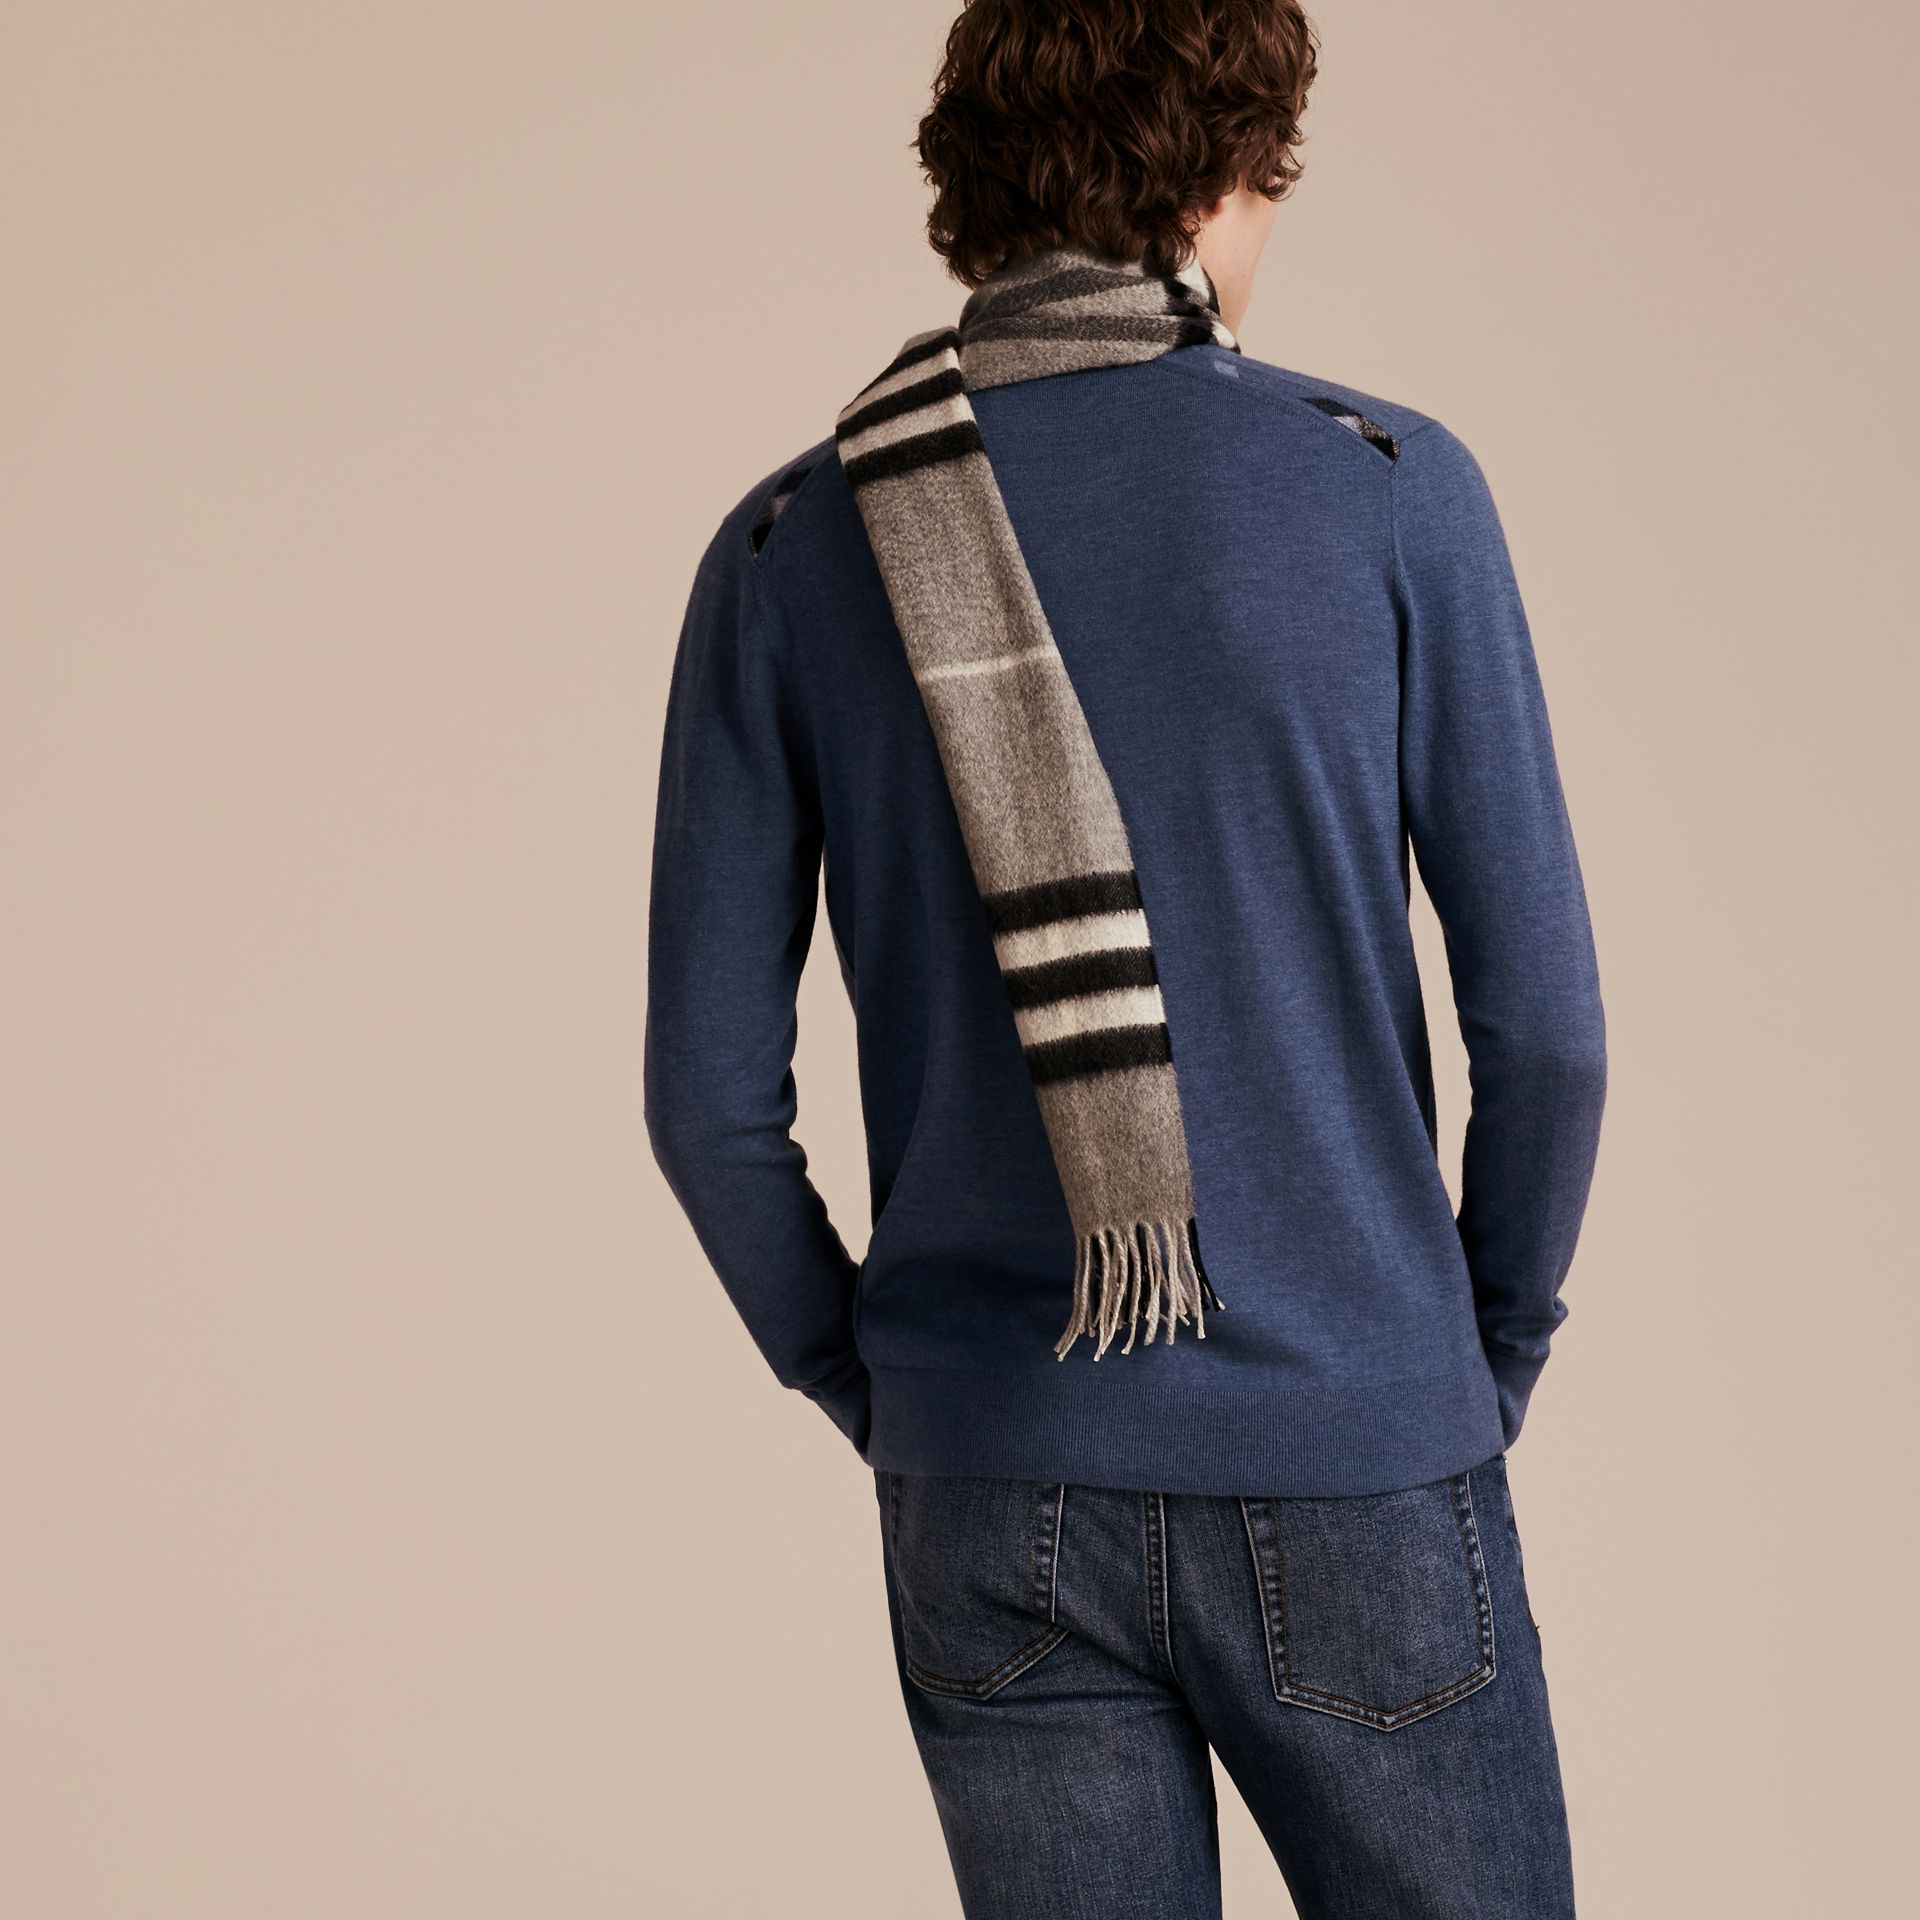 Check Jacquard Detail Cashmere Sweater in Dusty Blue - Men | Burberry - gallery image 2